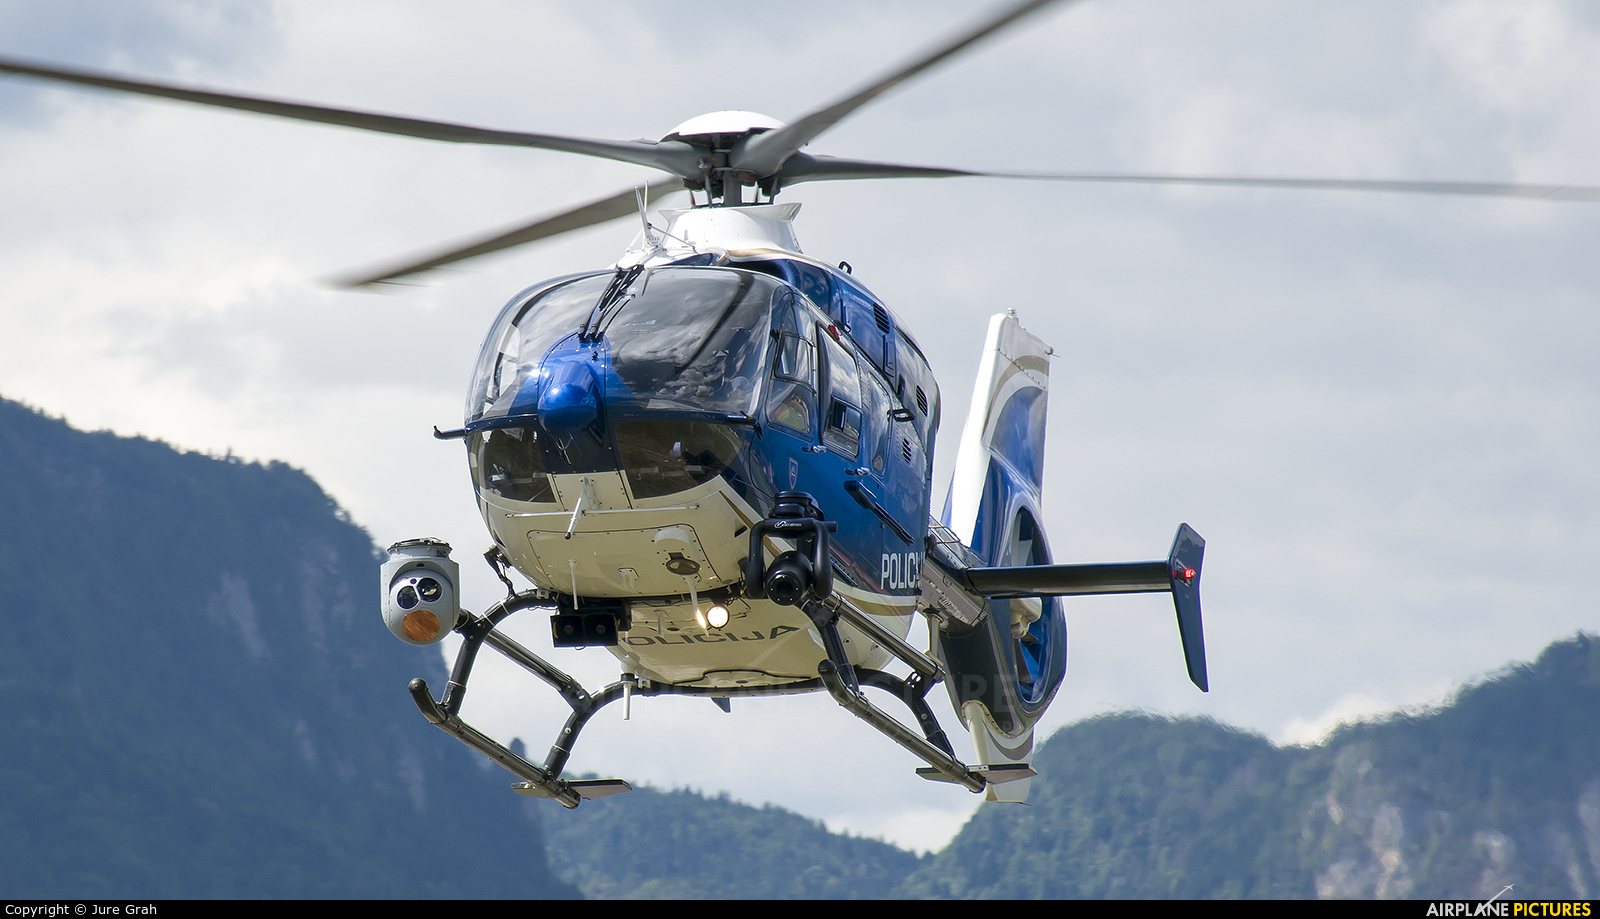 Slovenia - Police S5-HPH aircraft at Lesce-Bled